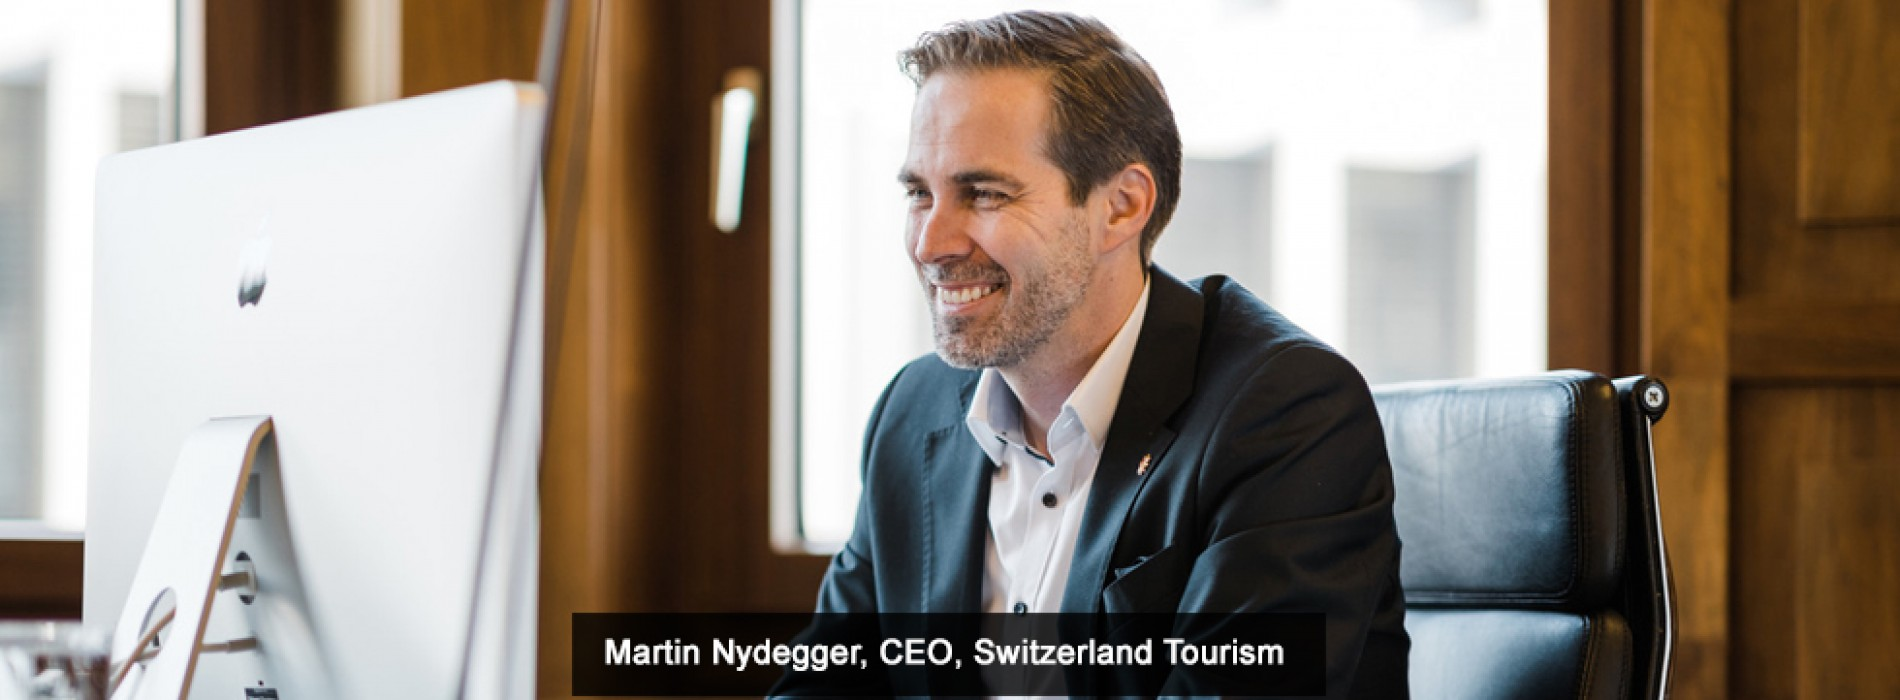 Martin Nydegger appointed as the new CEO of Switzerland Tourism